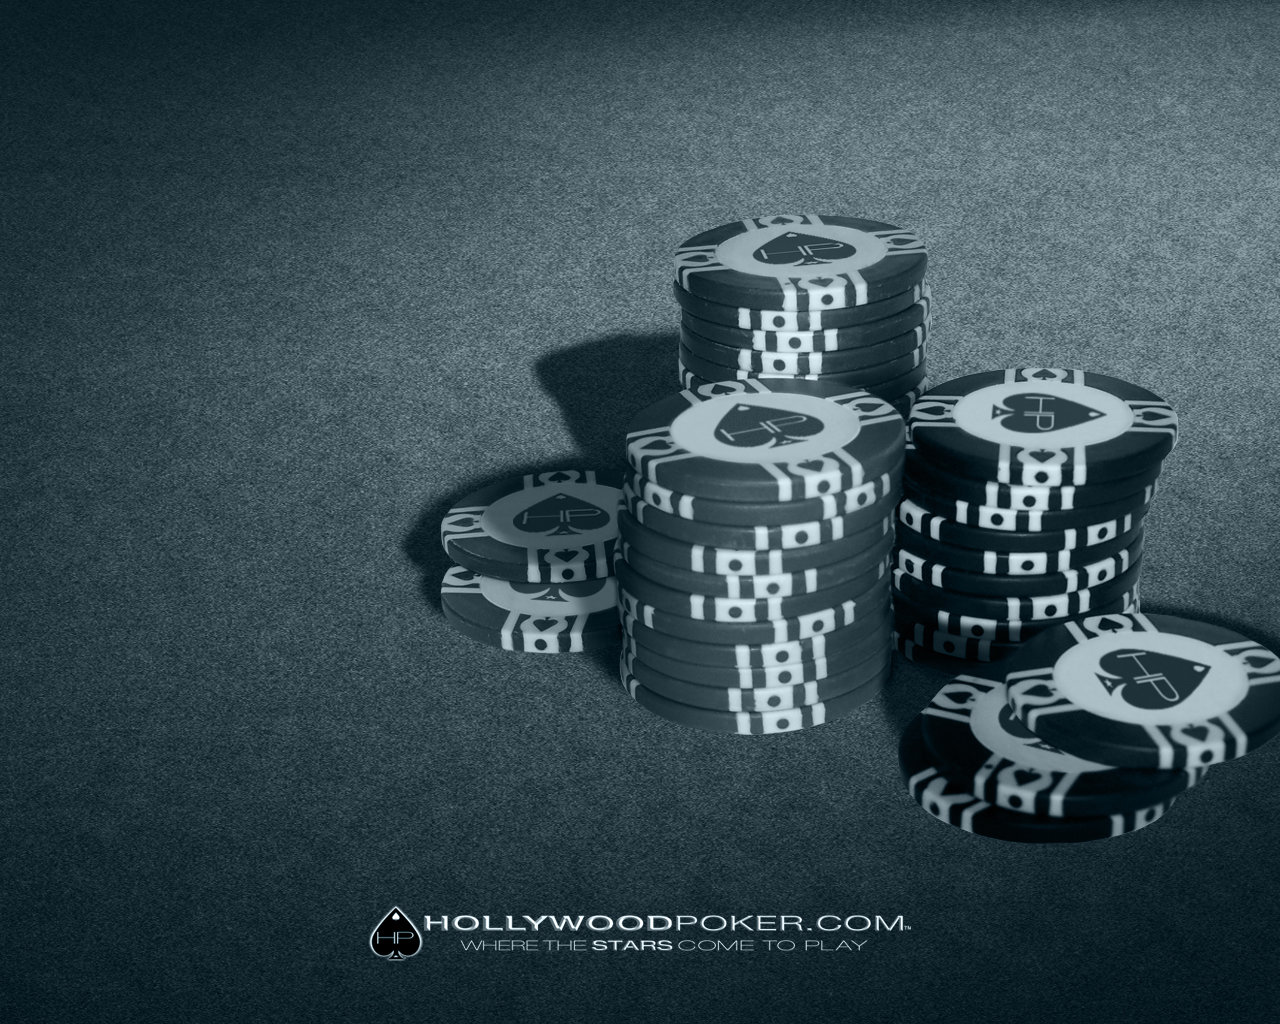 Online Casino And Other Merchandise